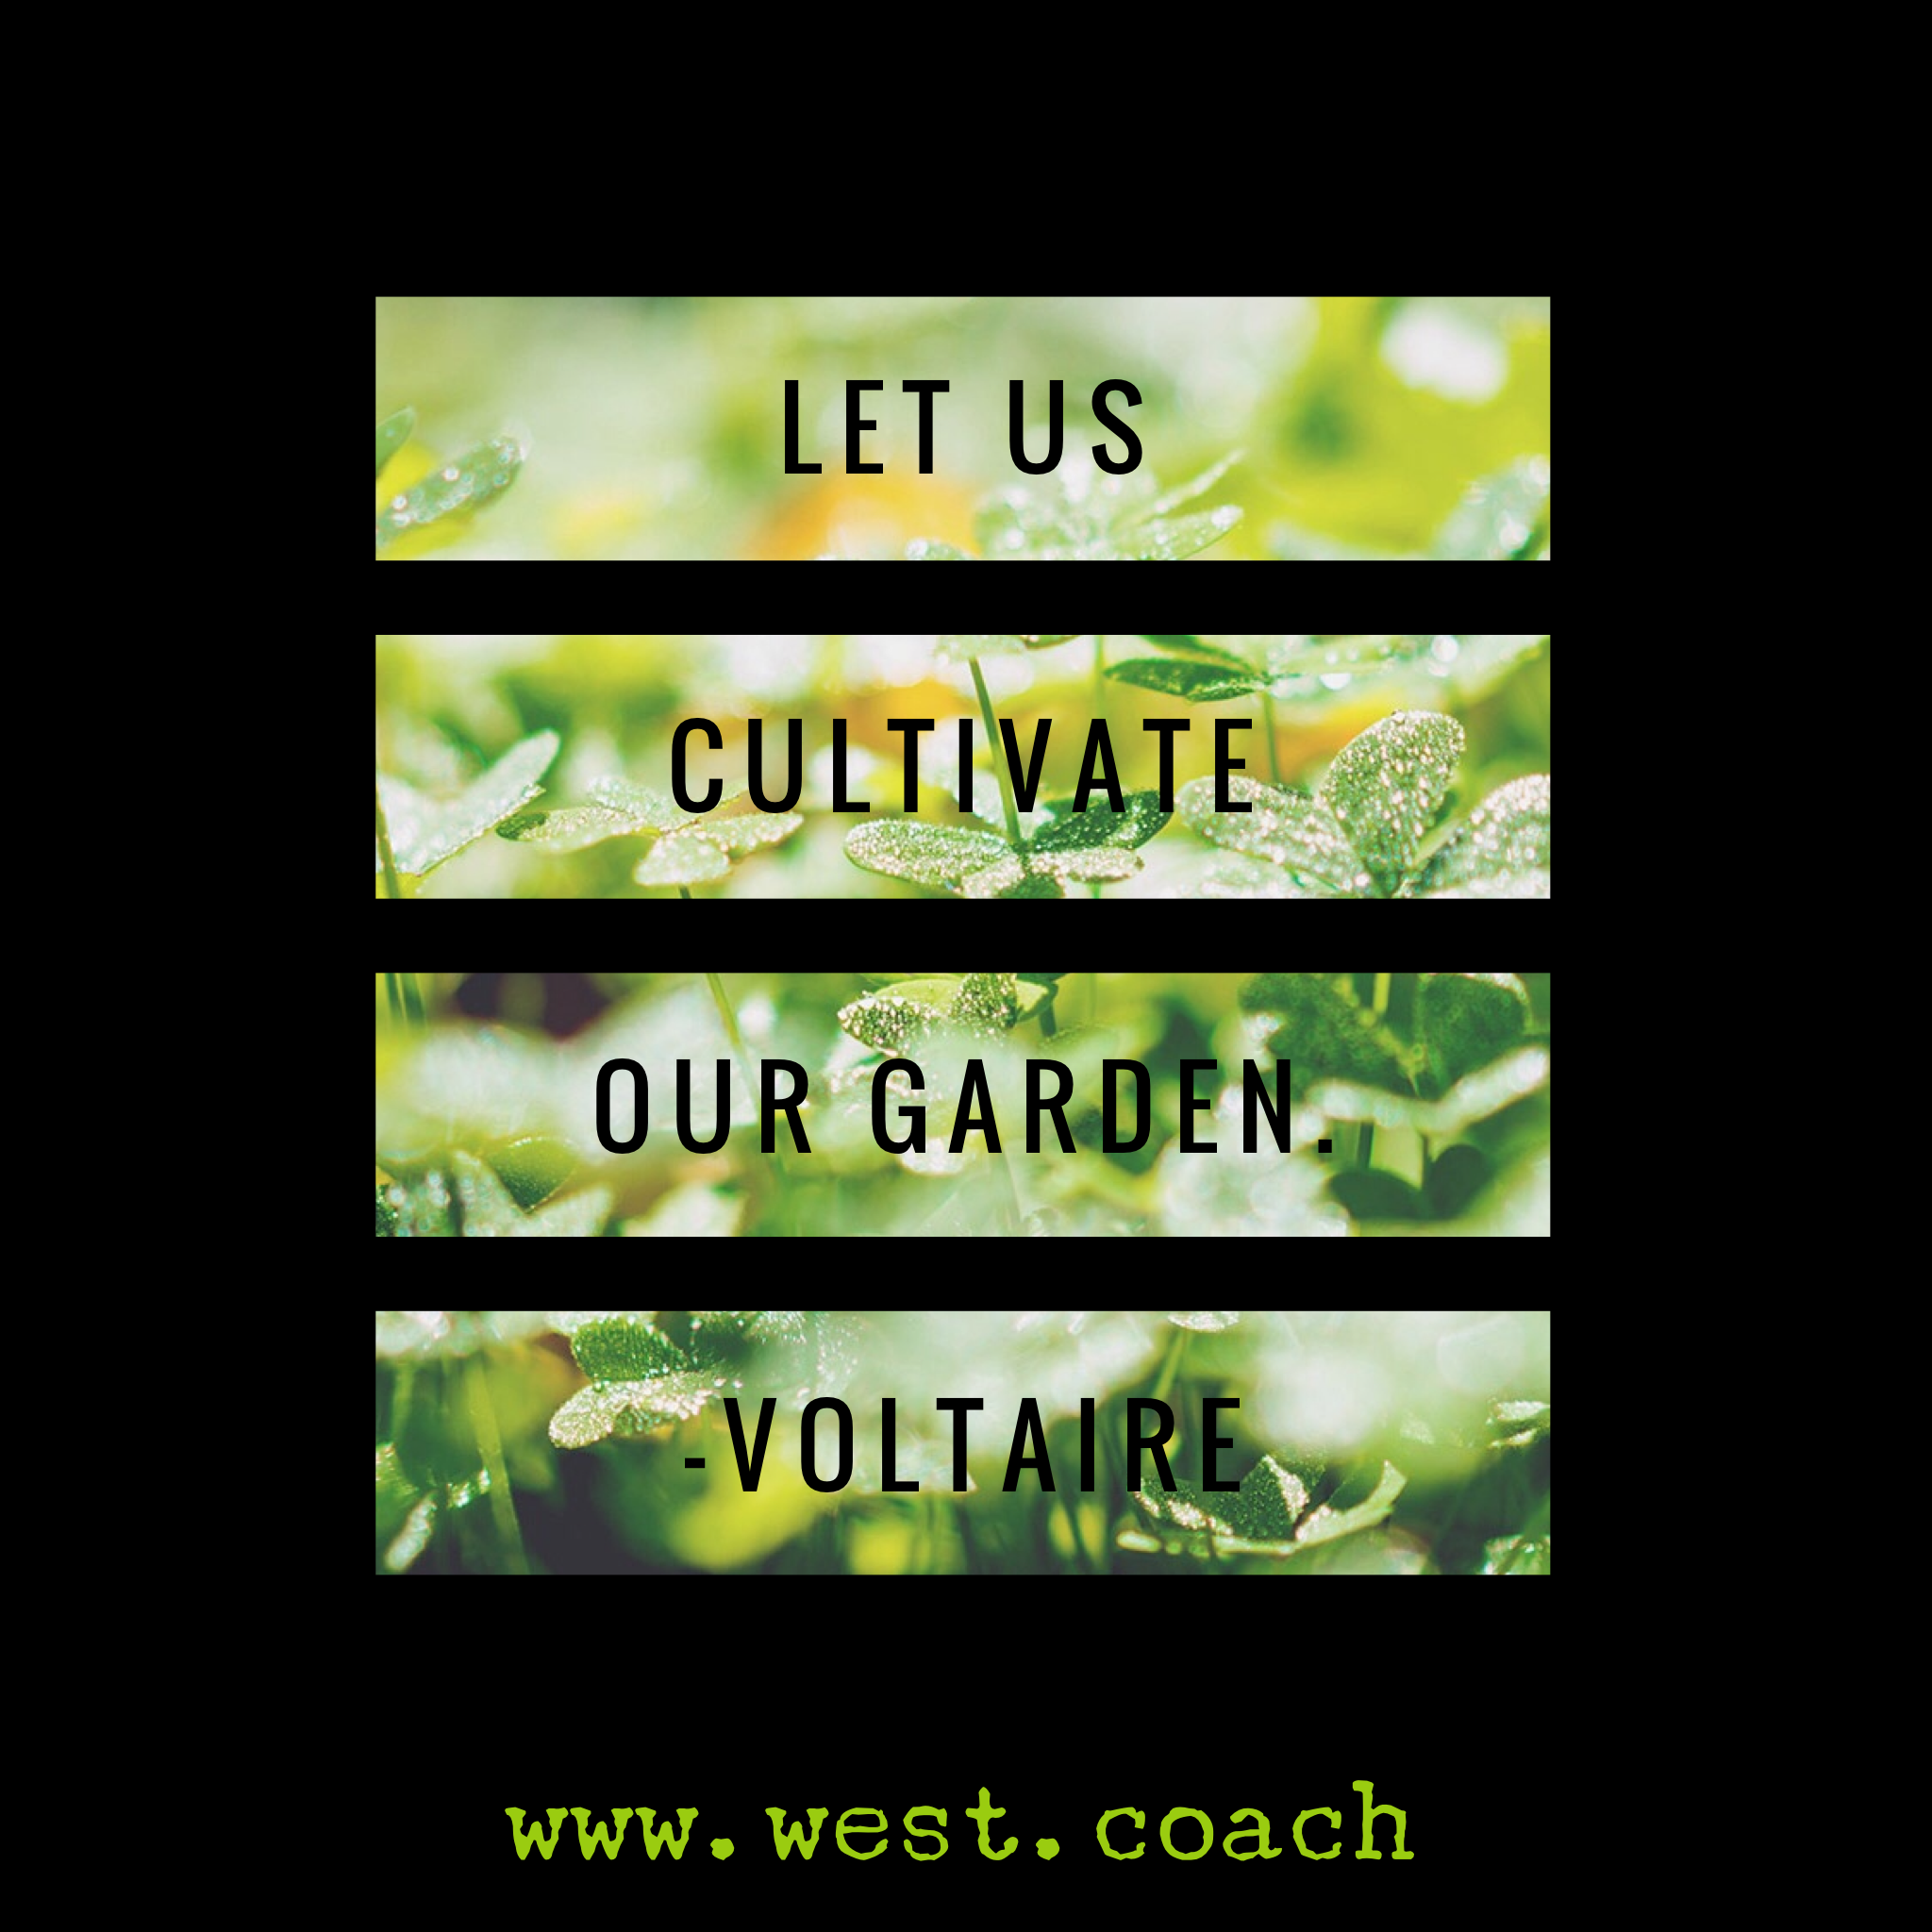 Let Us Cultivate Our Garden